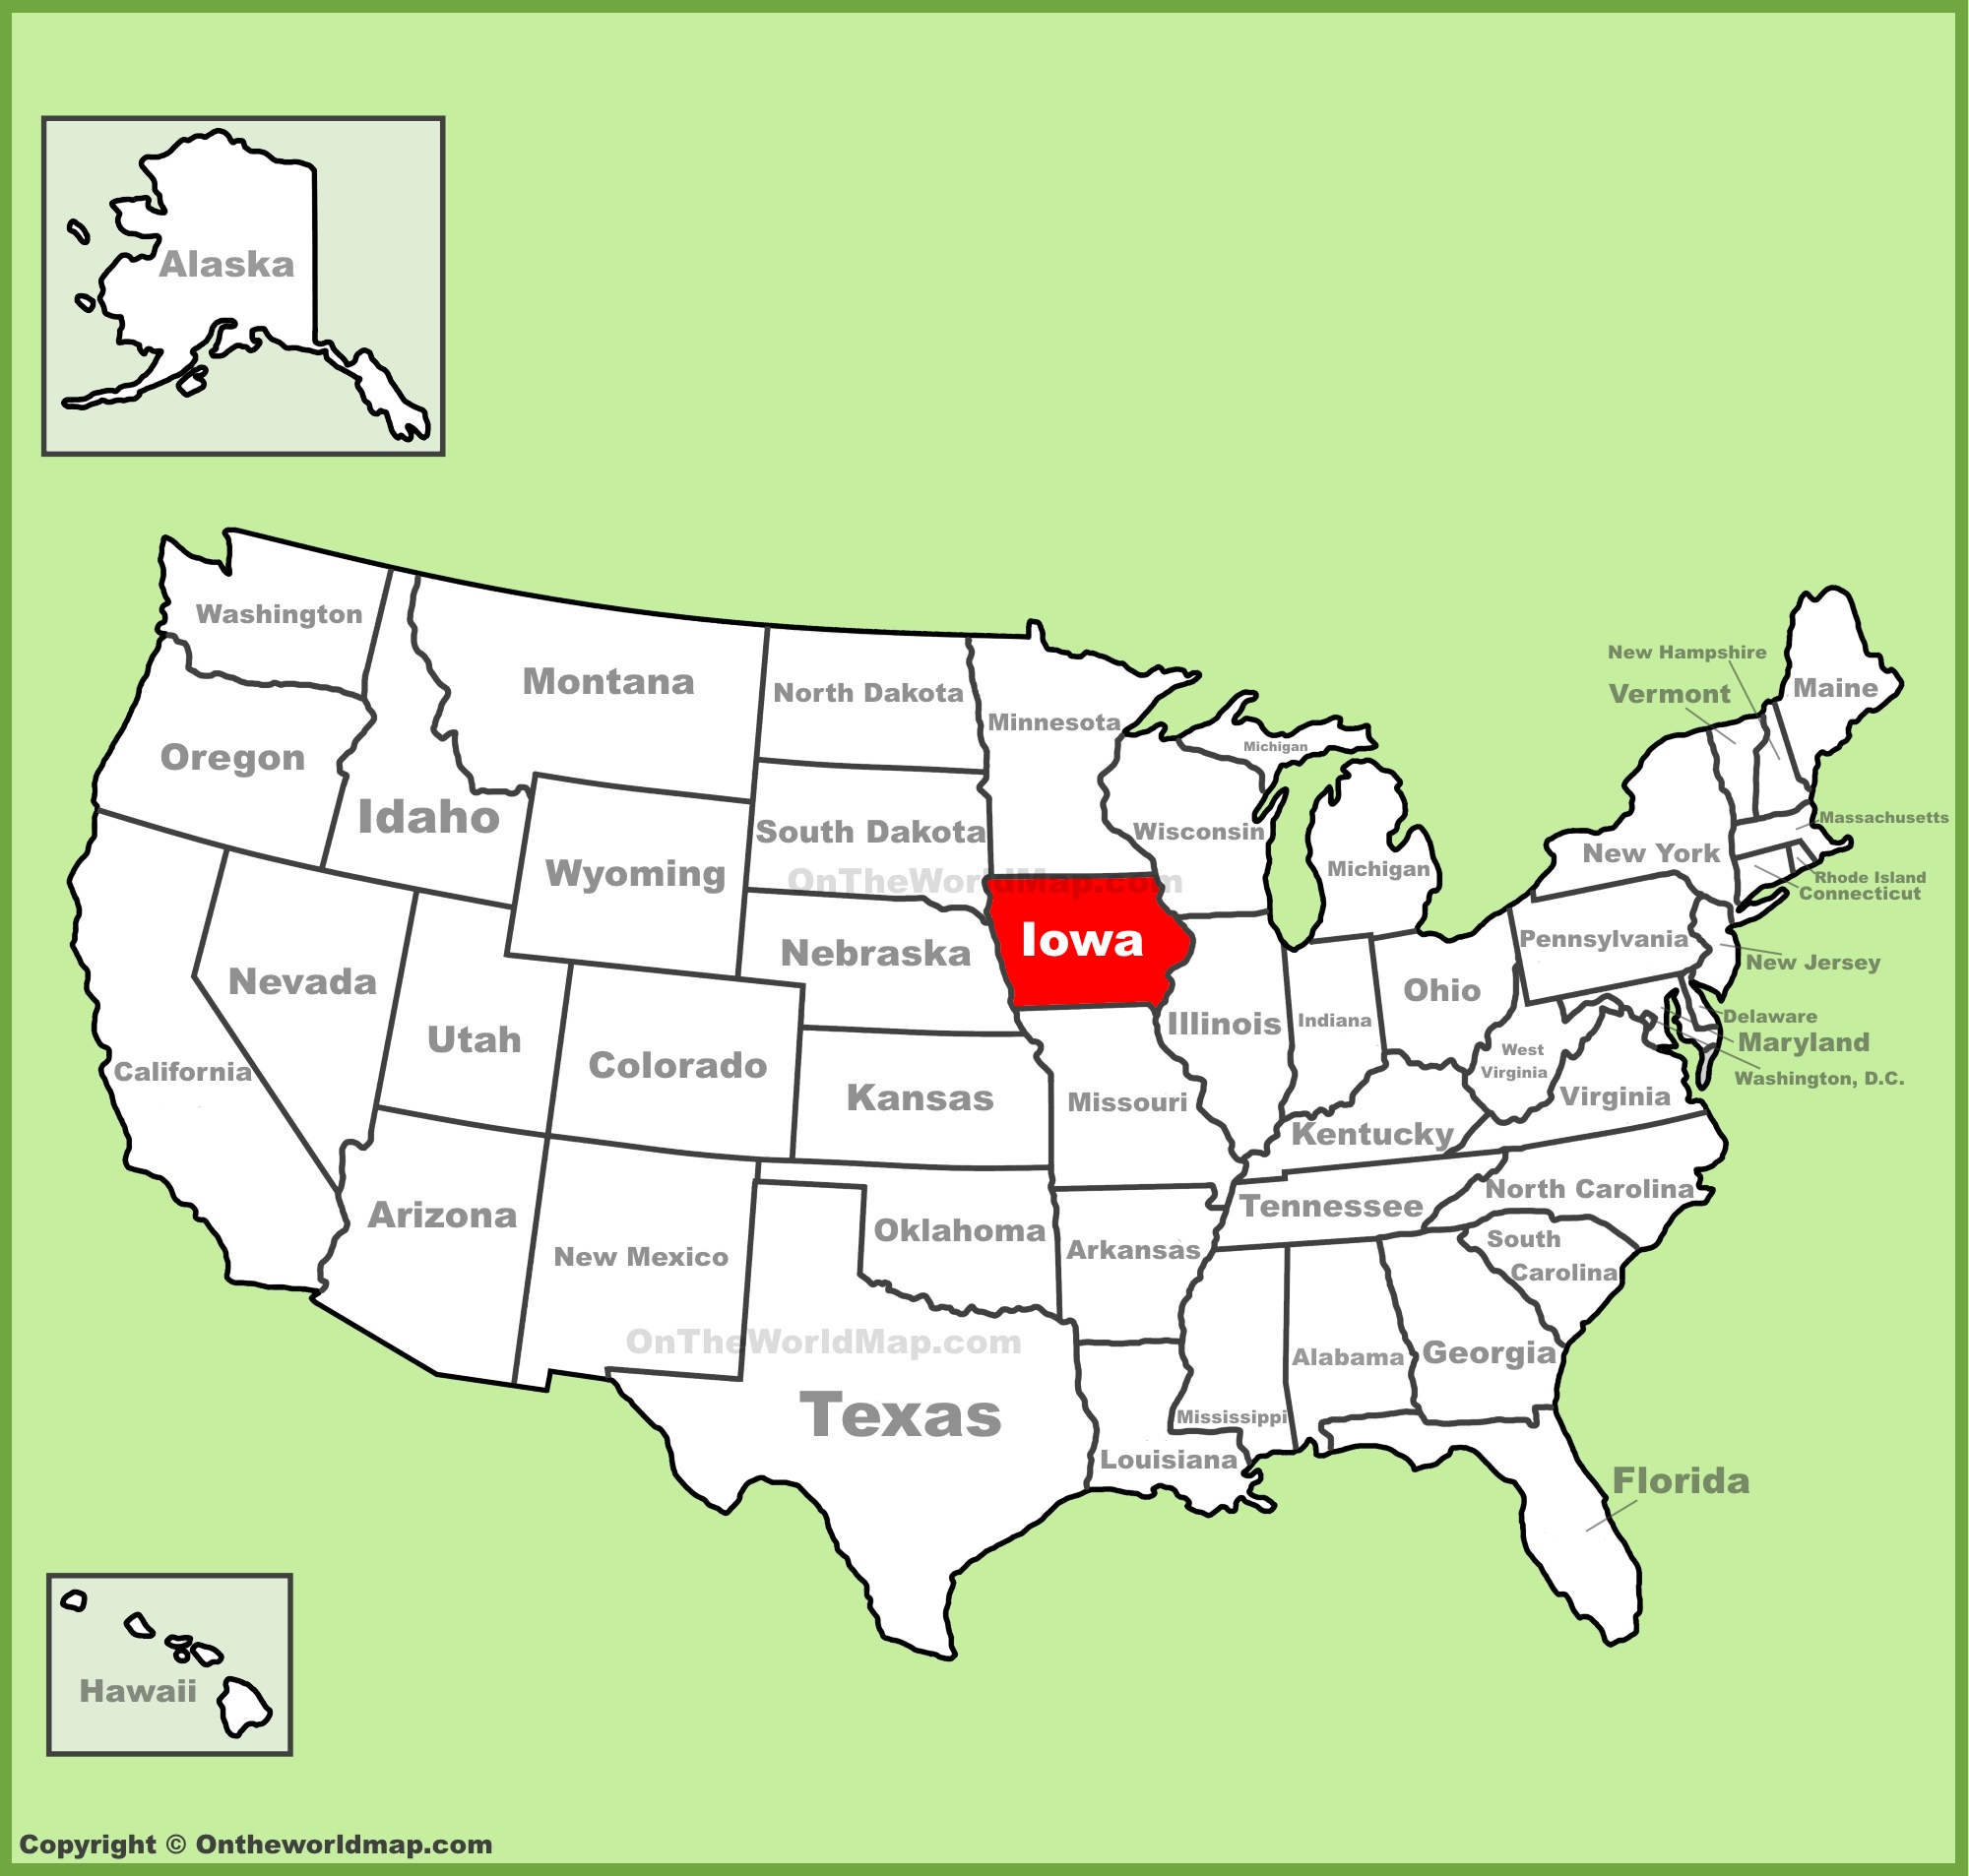 Iowa State Maps USA Maps Of Iowa IA - Map usa iowa